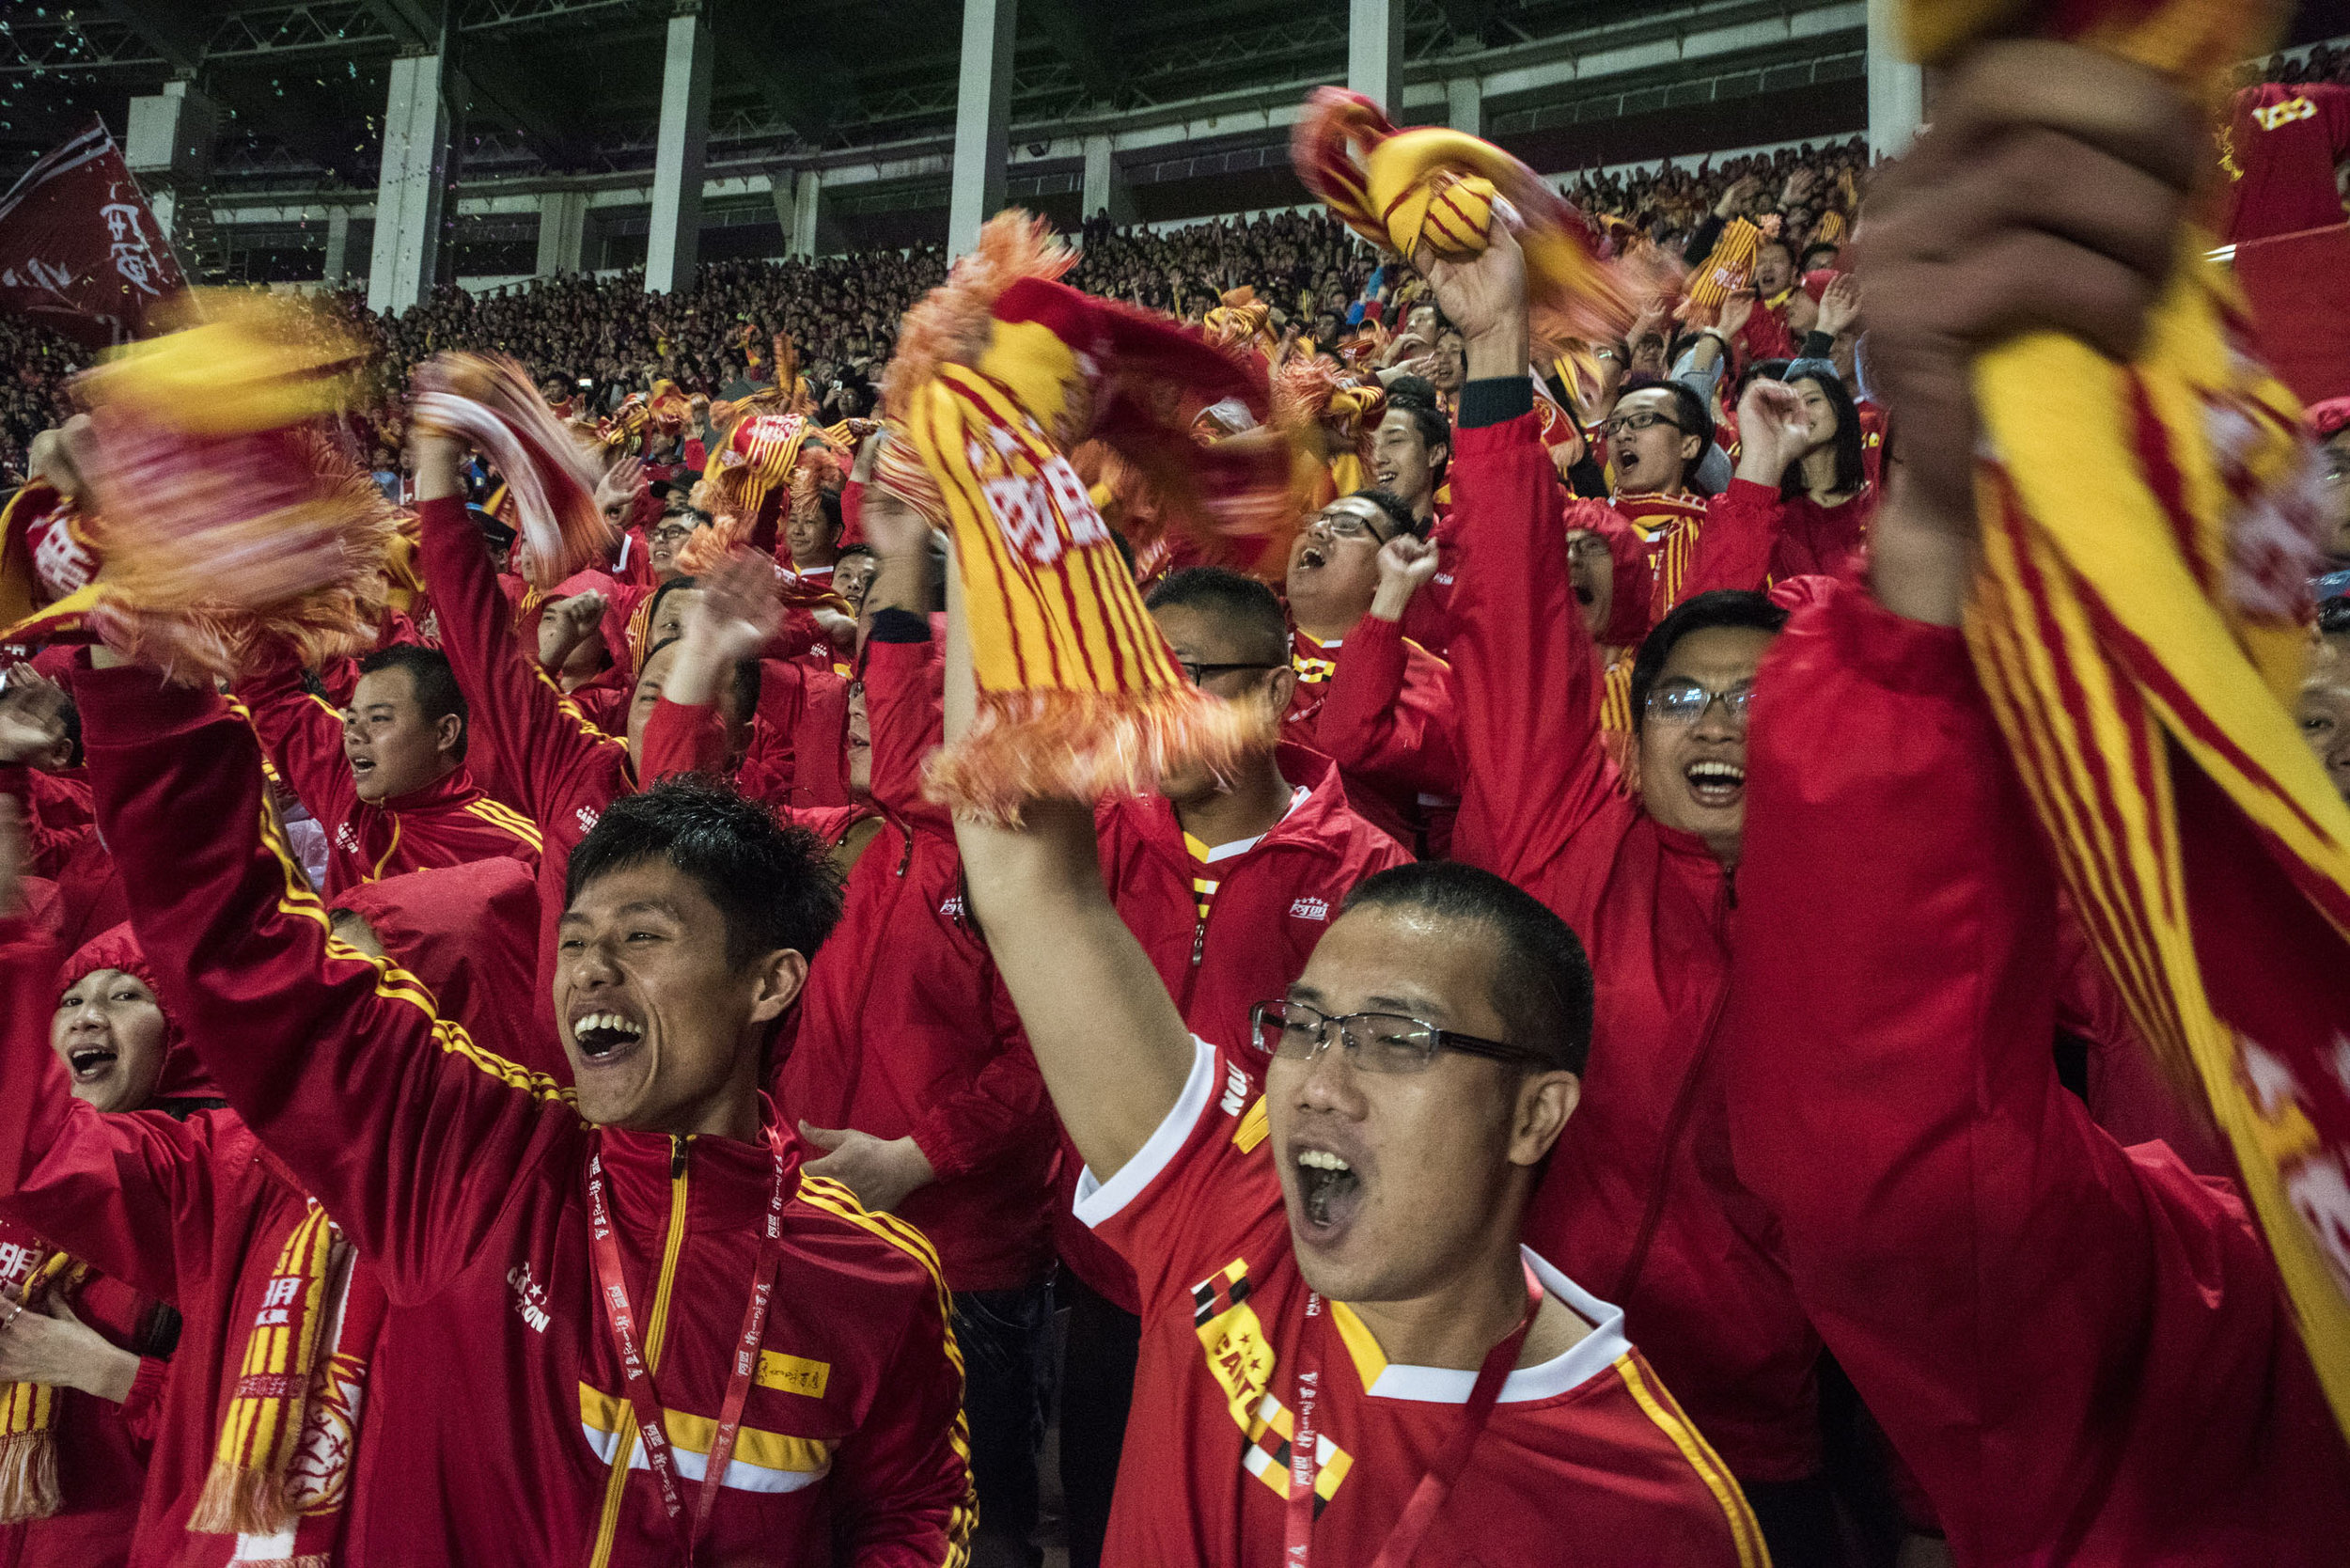 At The Guangzhou Tianhe stadium Evergrande supporters cheering as their team just scored a goal during a Chinese League game against Changcun Yatai F.C..